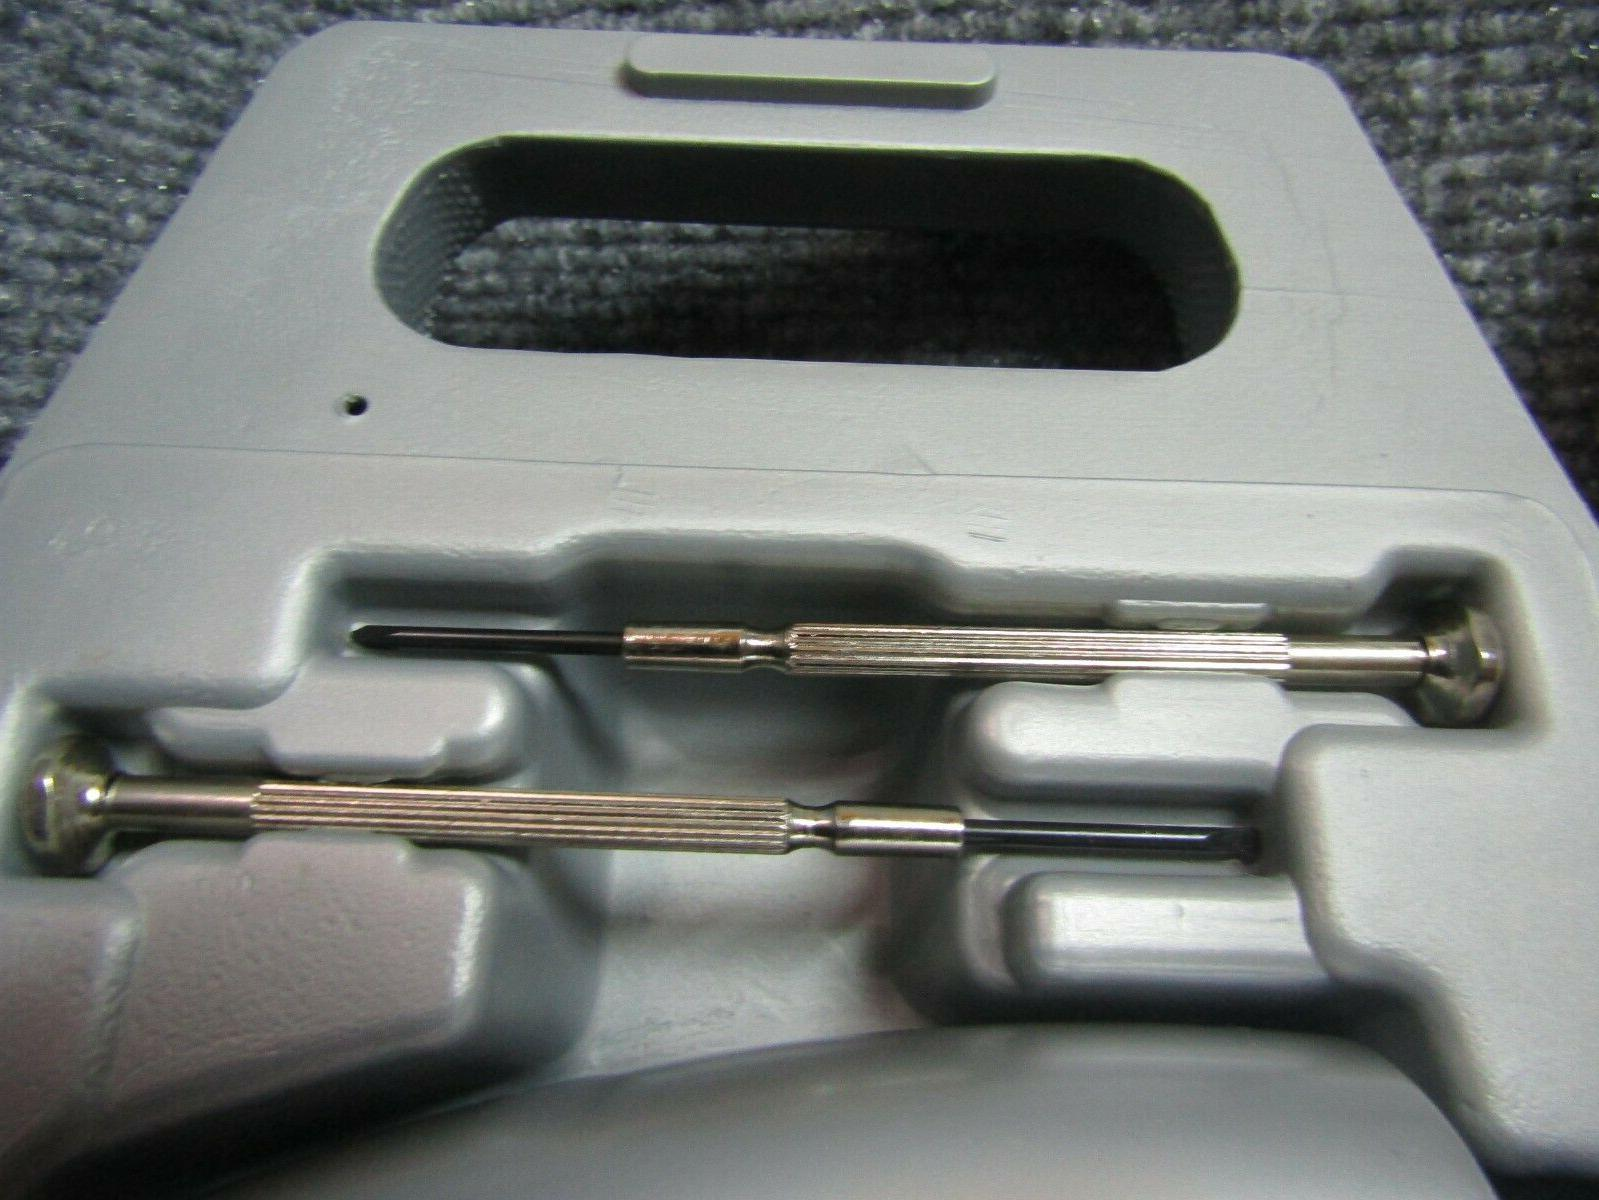 Powercell Screwdriver Piece and Set Case